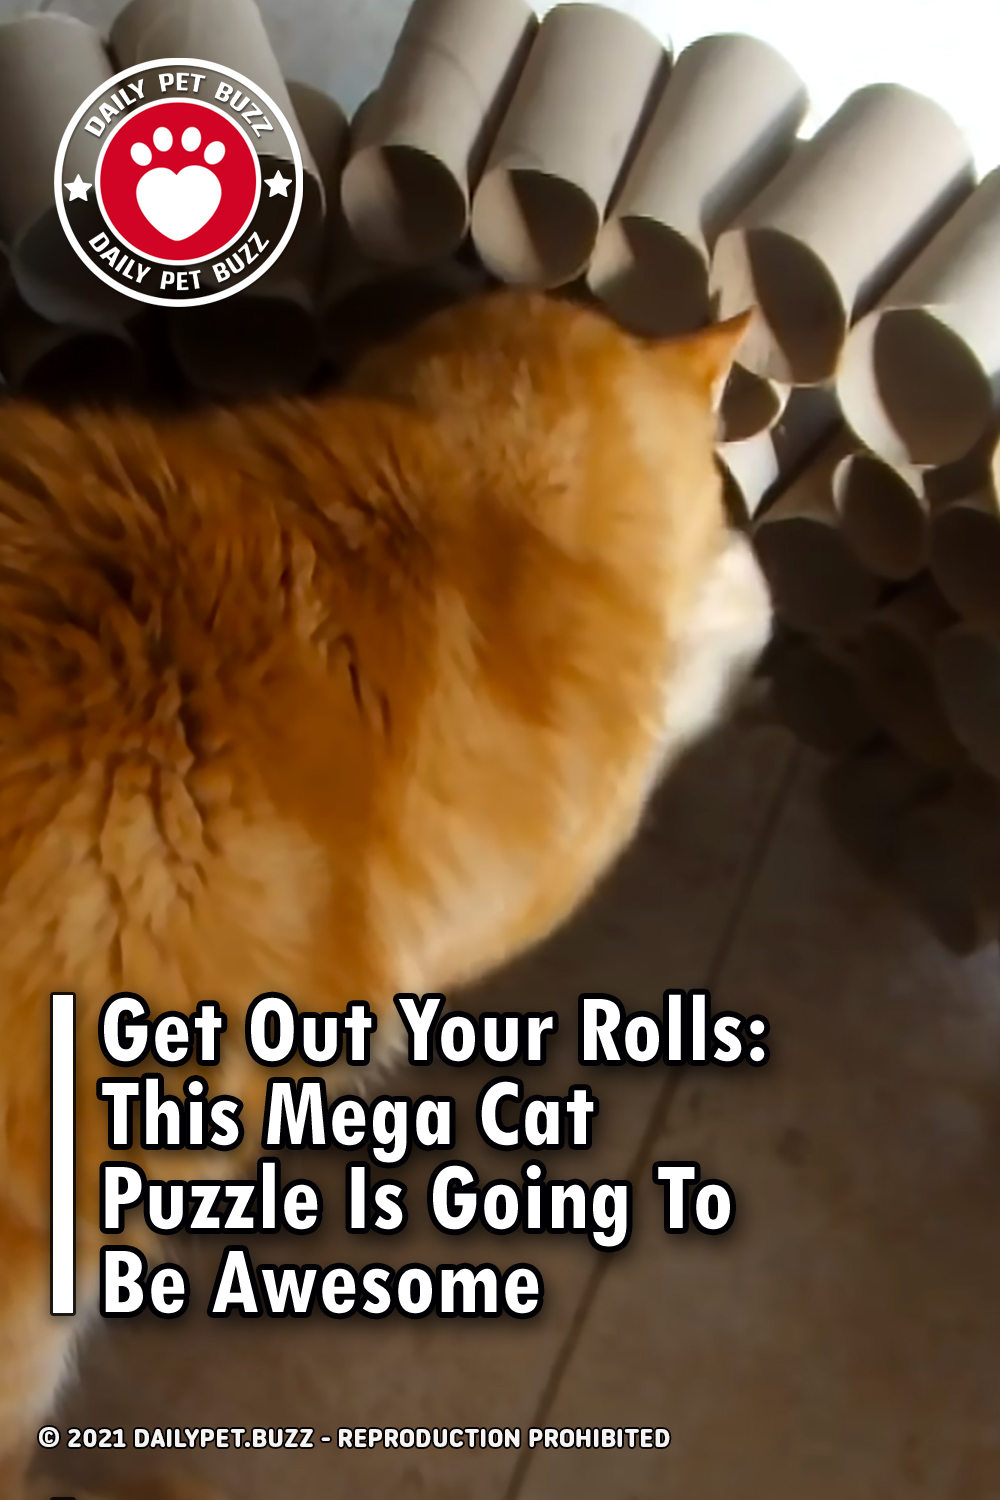 Get Out Your Rolls: This Mega Cat Puzzle Is Going To Be Awesome